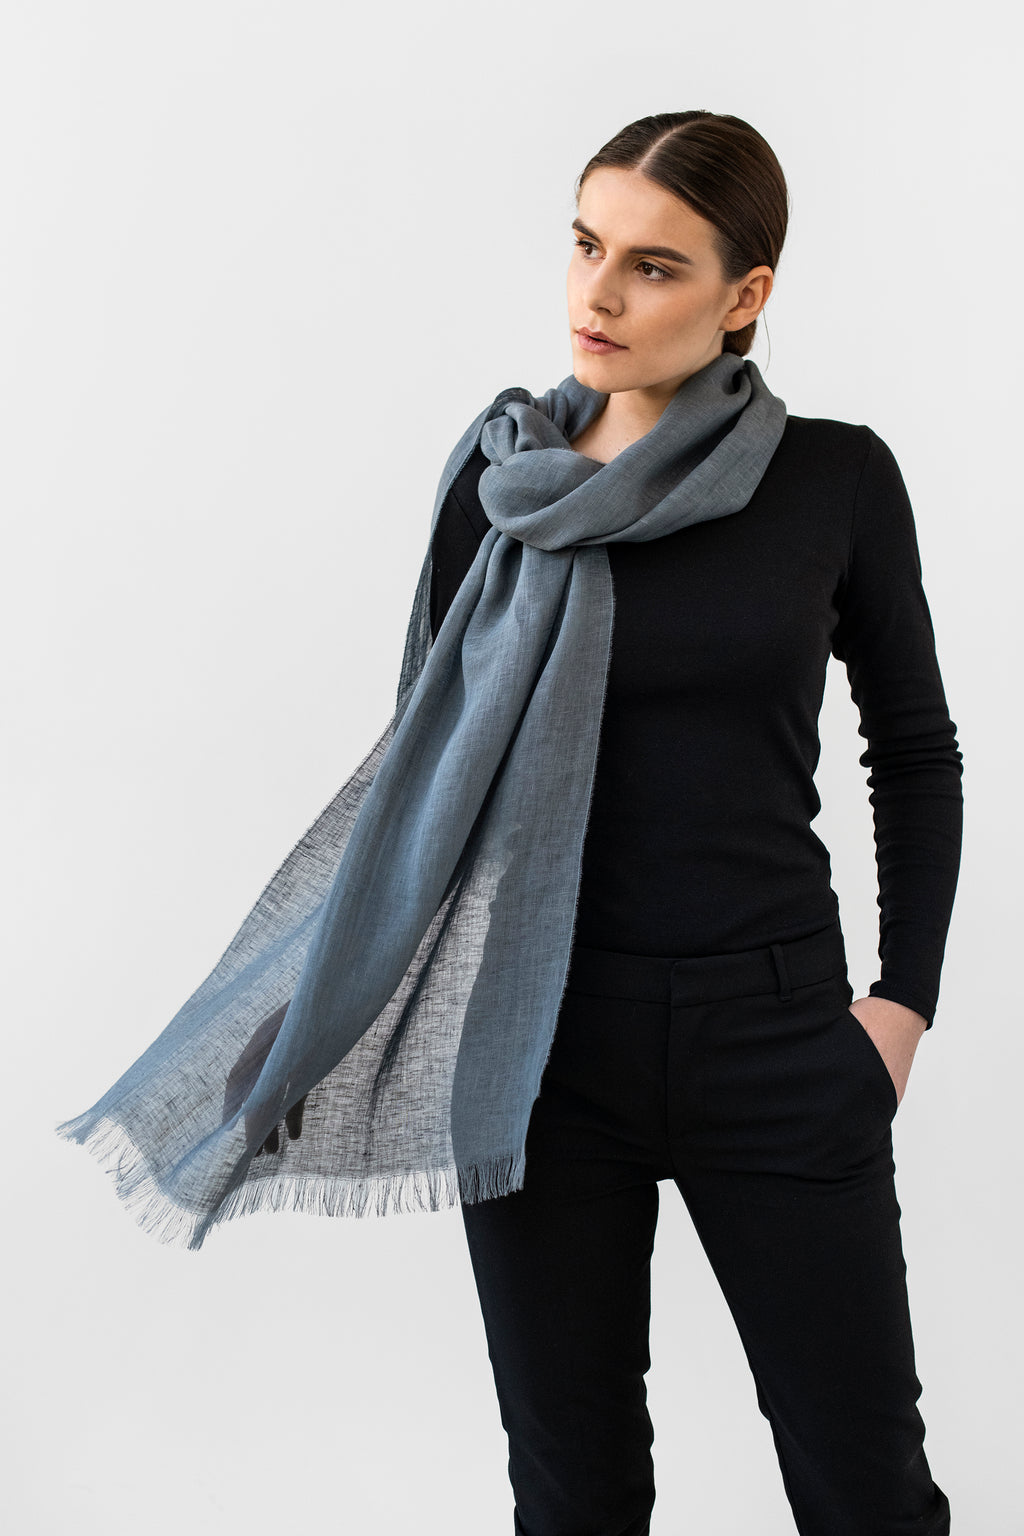 Scarf LUKA in graphite grey